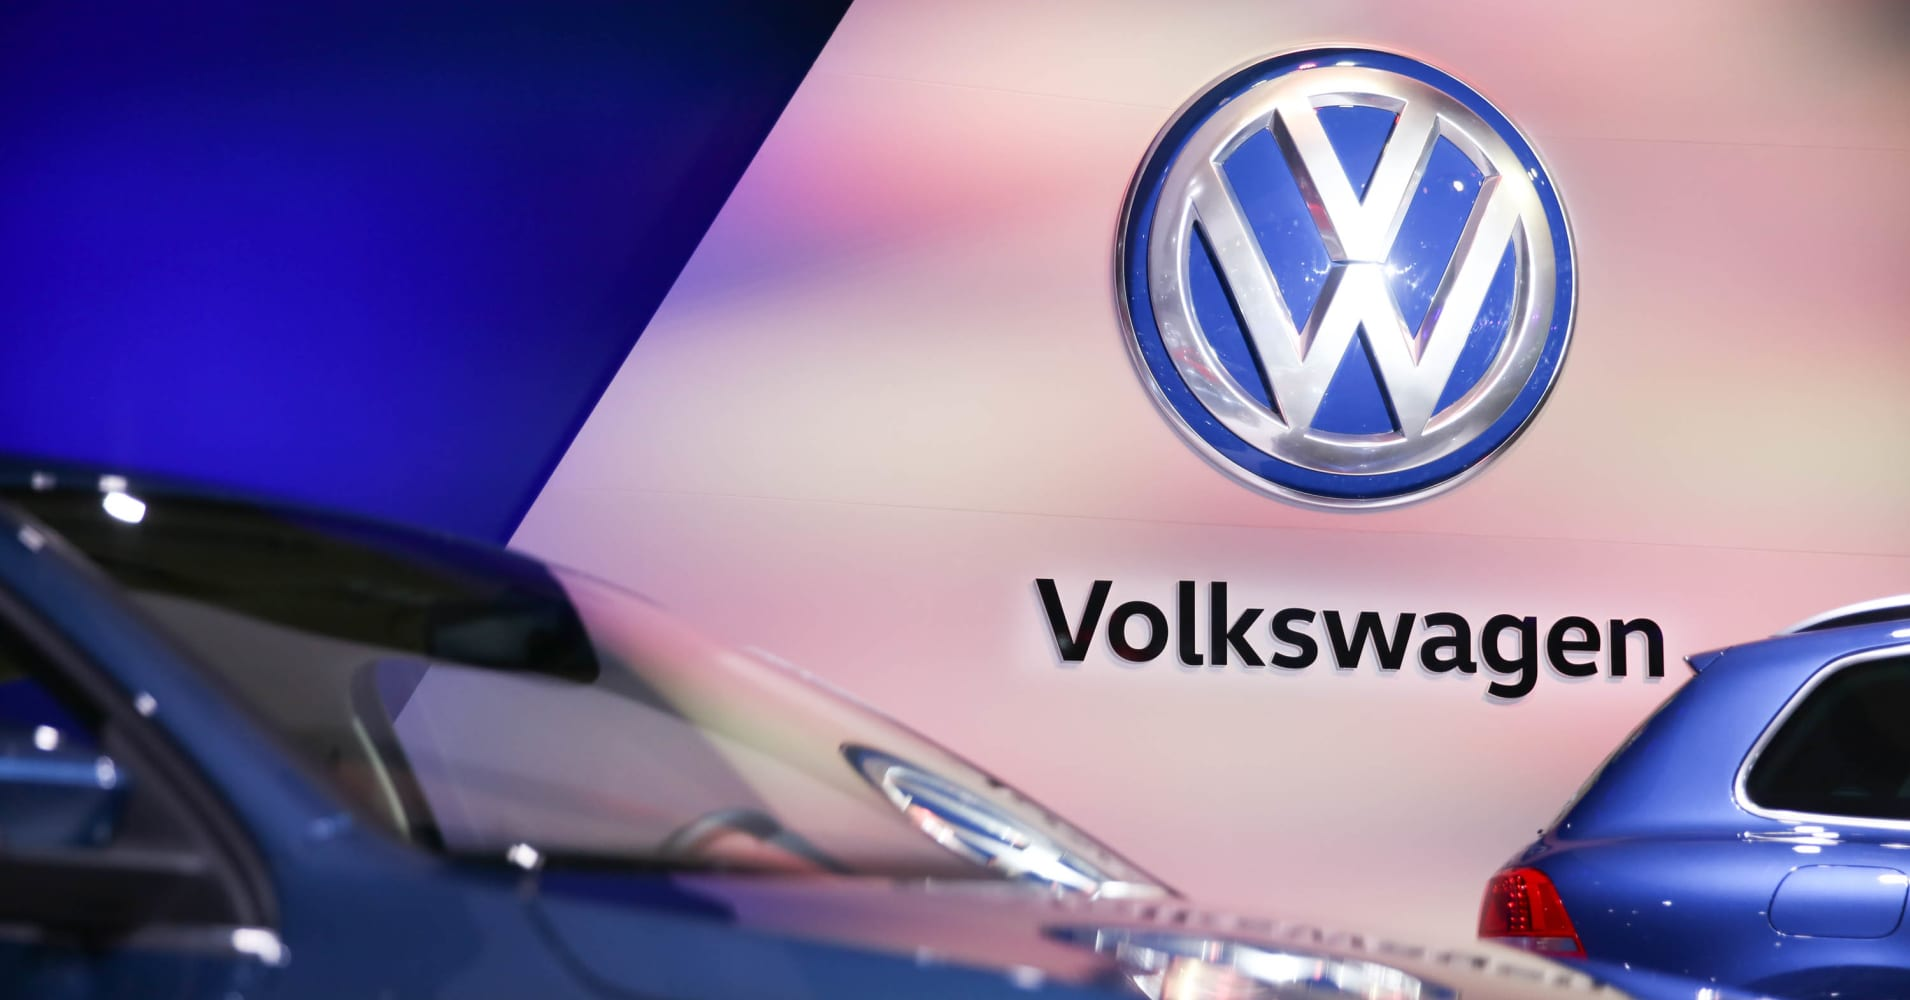 VW talks with union break down, leaving costs deal in limbo, report says